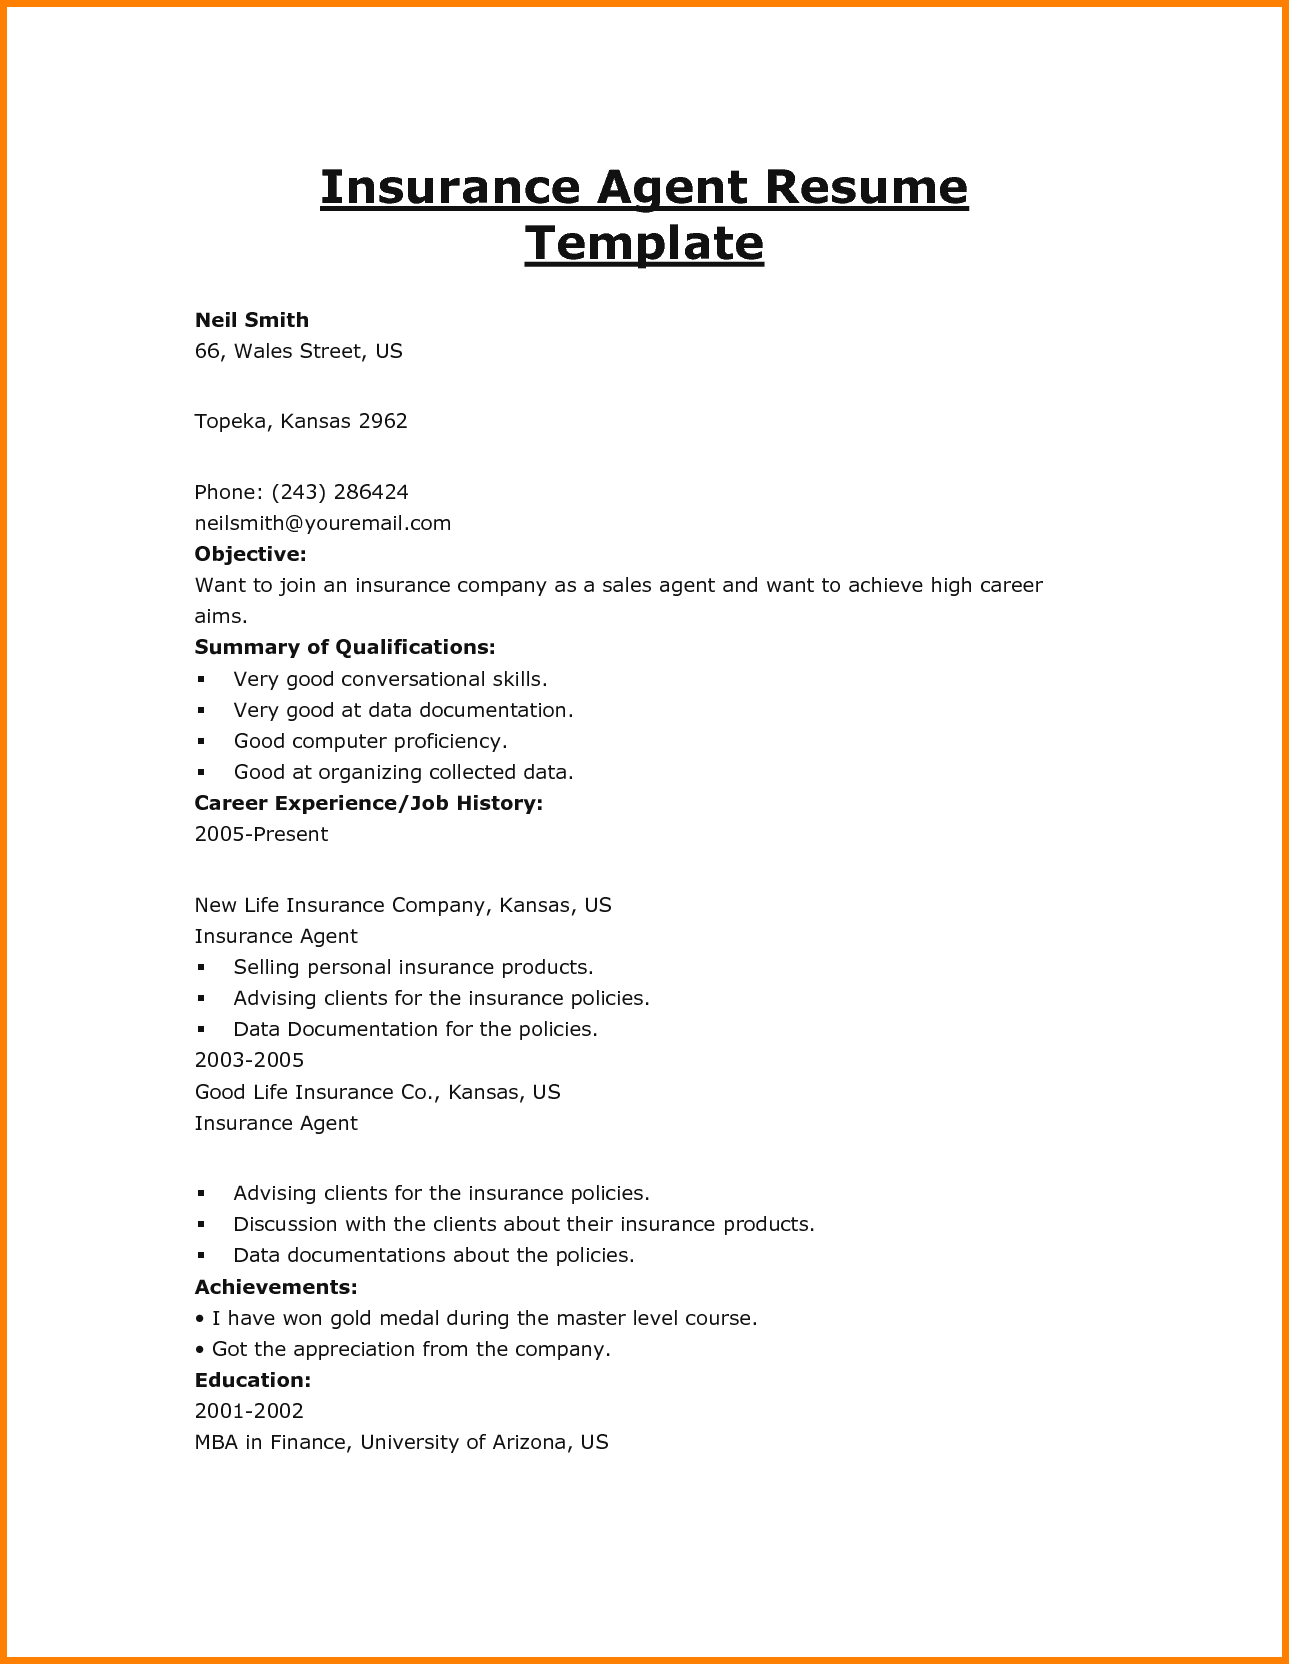 Insurance Agent Resume Samplesurance Job Description For Home